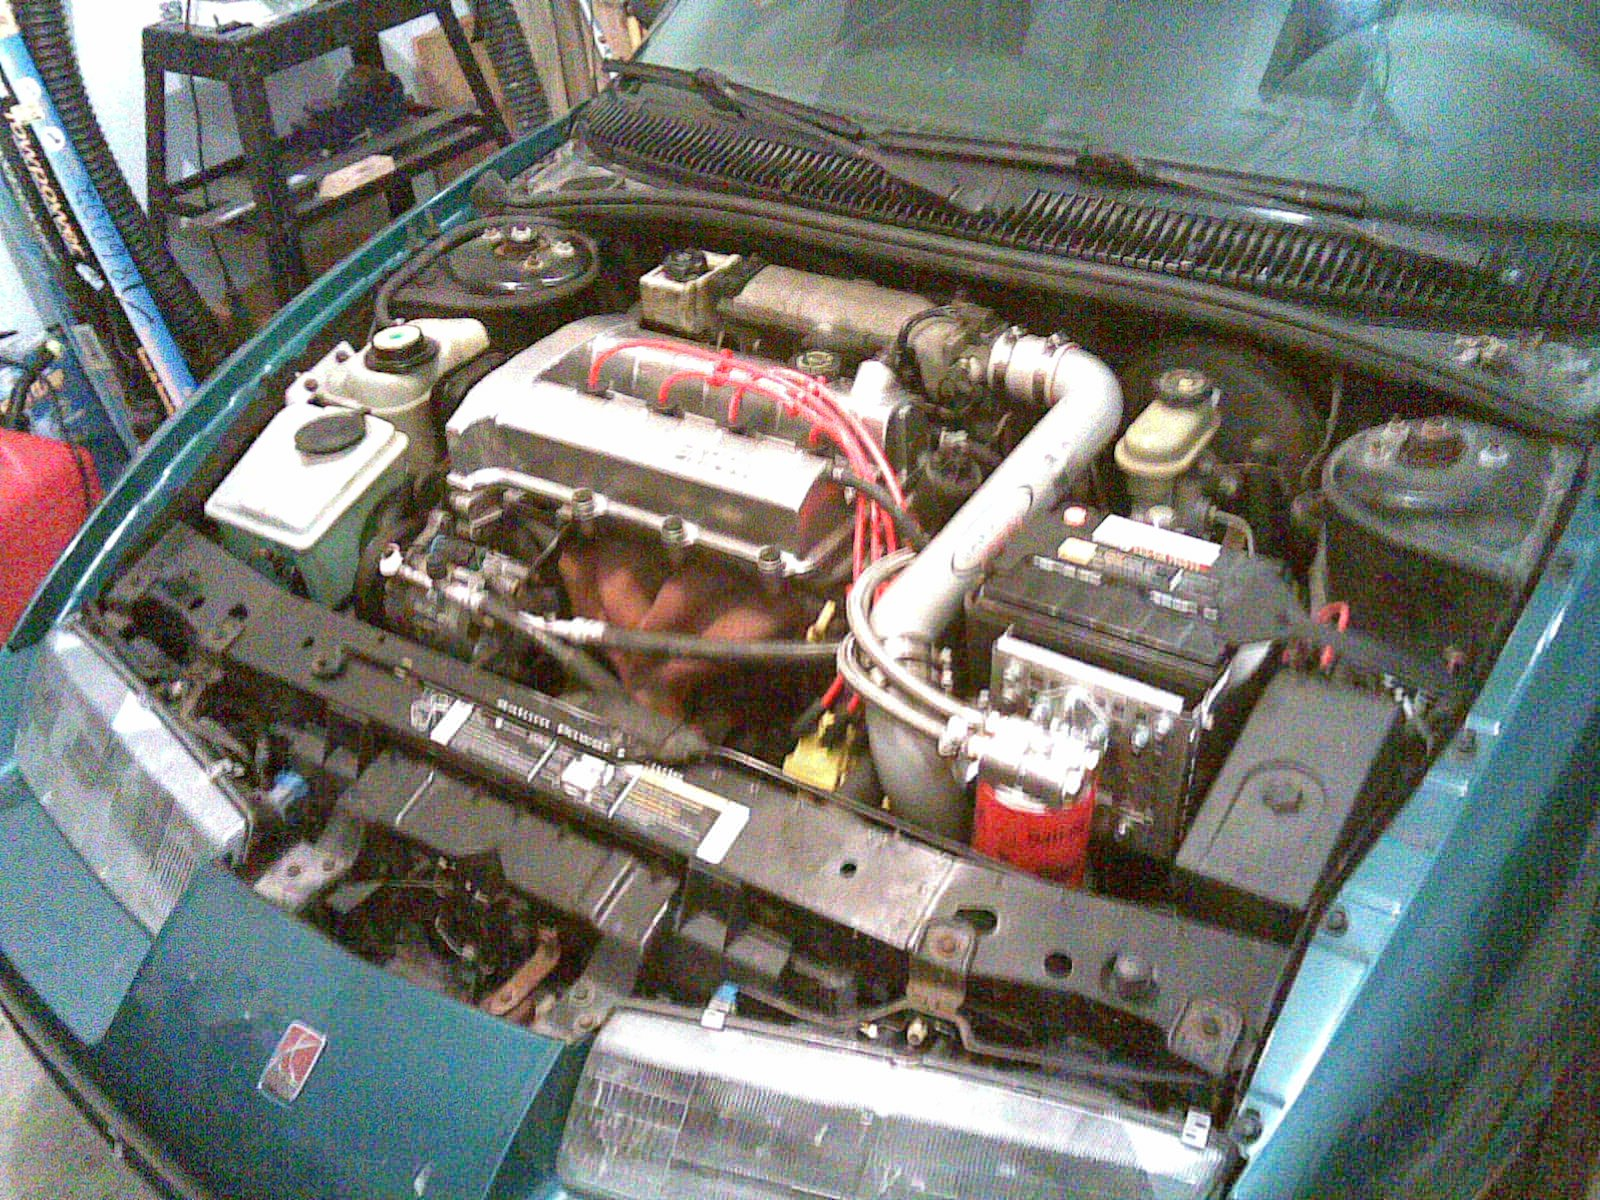 hight resolution of 2001 saturn sl2 engine diagram of parts wiring diagram database 2001 saturn sl2 engine diagram on saturn car engine diagram